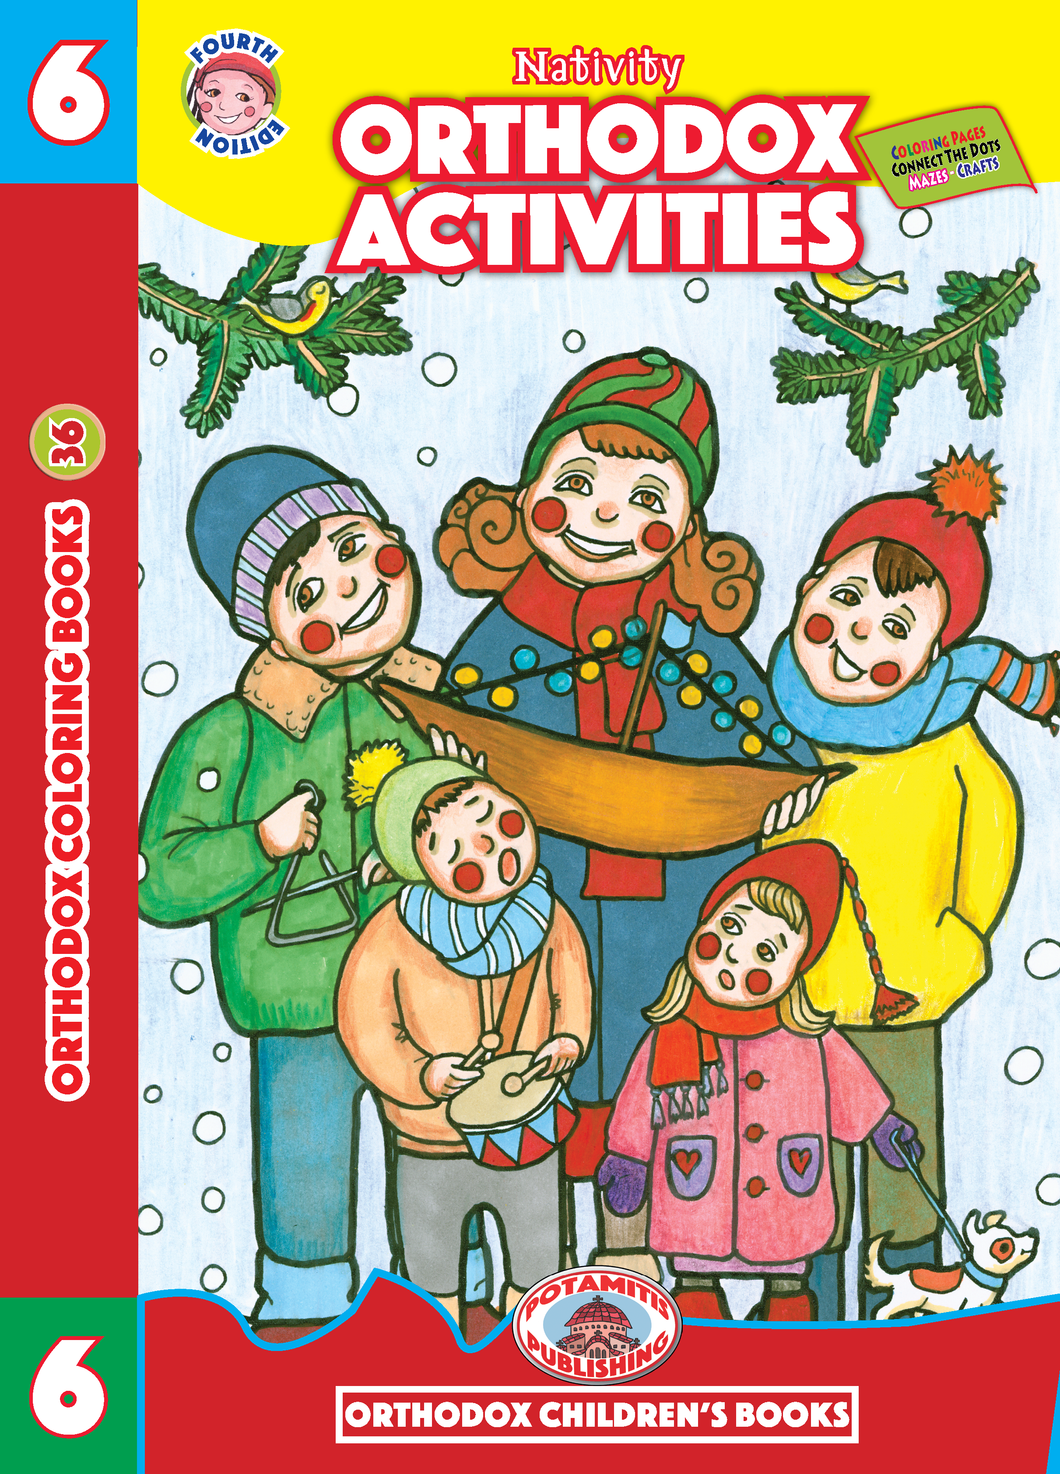 Orthodox Coloring Books #36 - Orthodox Activities #6